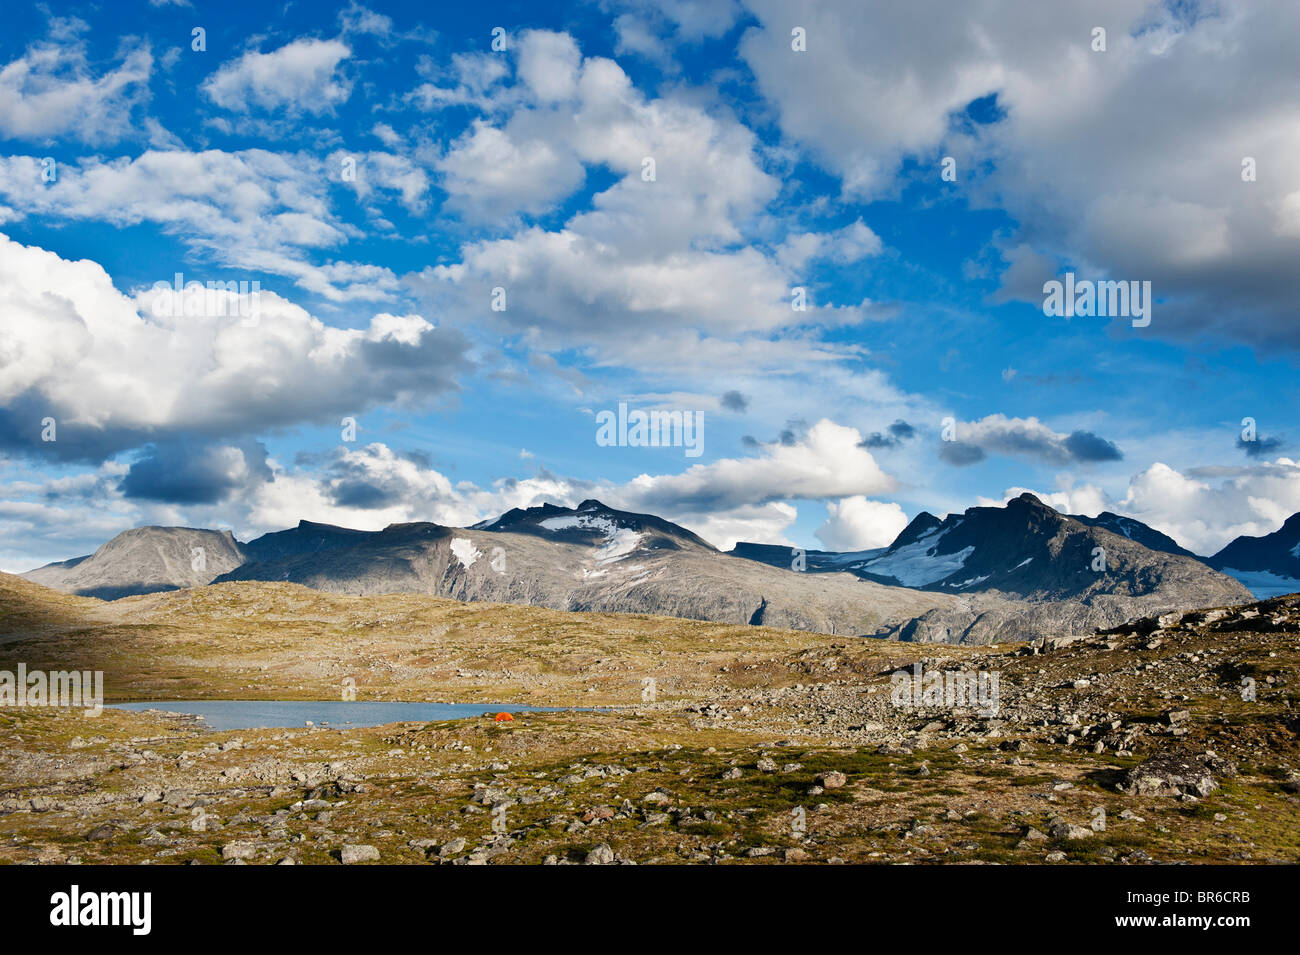 Scenic mountain landscape of Jotunheimen national park, Norway - Stock Image